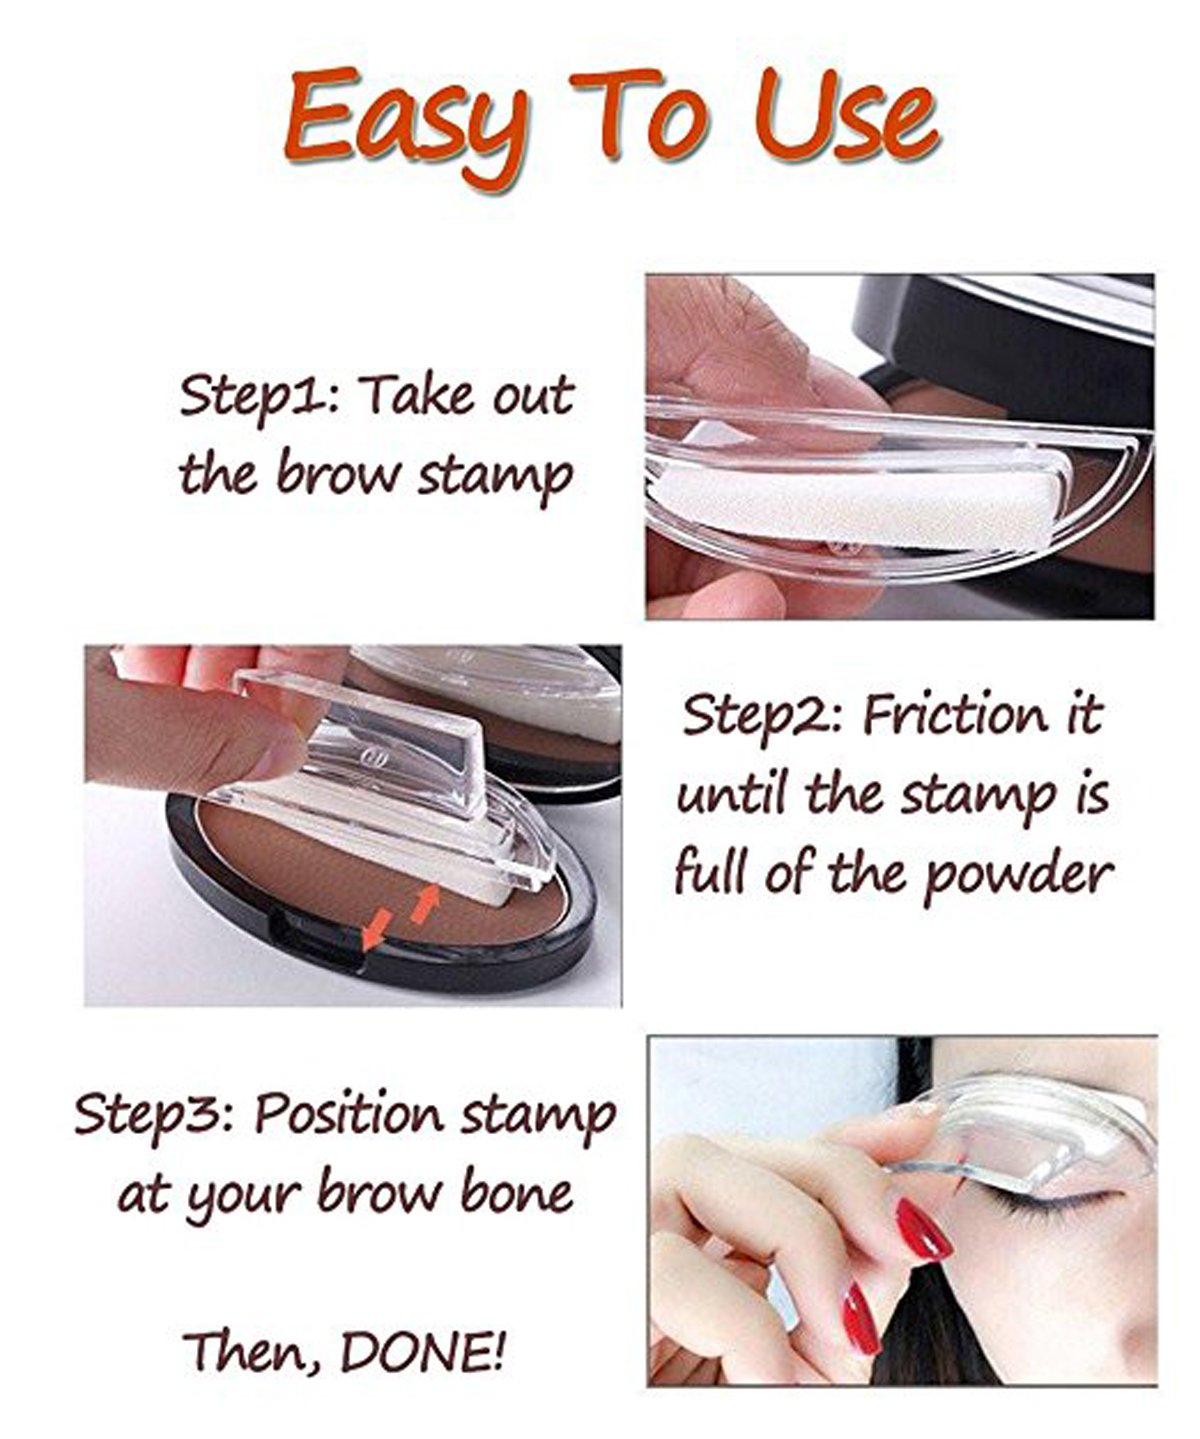 Taipo 3 Stencils Waterproof Eye Brow Stamp Perfect Eyebrow Power Seal Nature Delicate Shape Makeup Fashion Unique Brow Powder for Eyebrows Beginners Busy People (Dark Brown) by Taipo (Image #3)